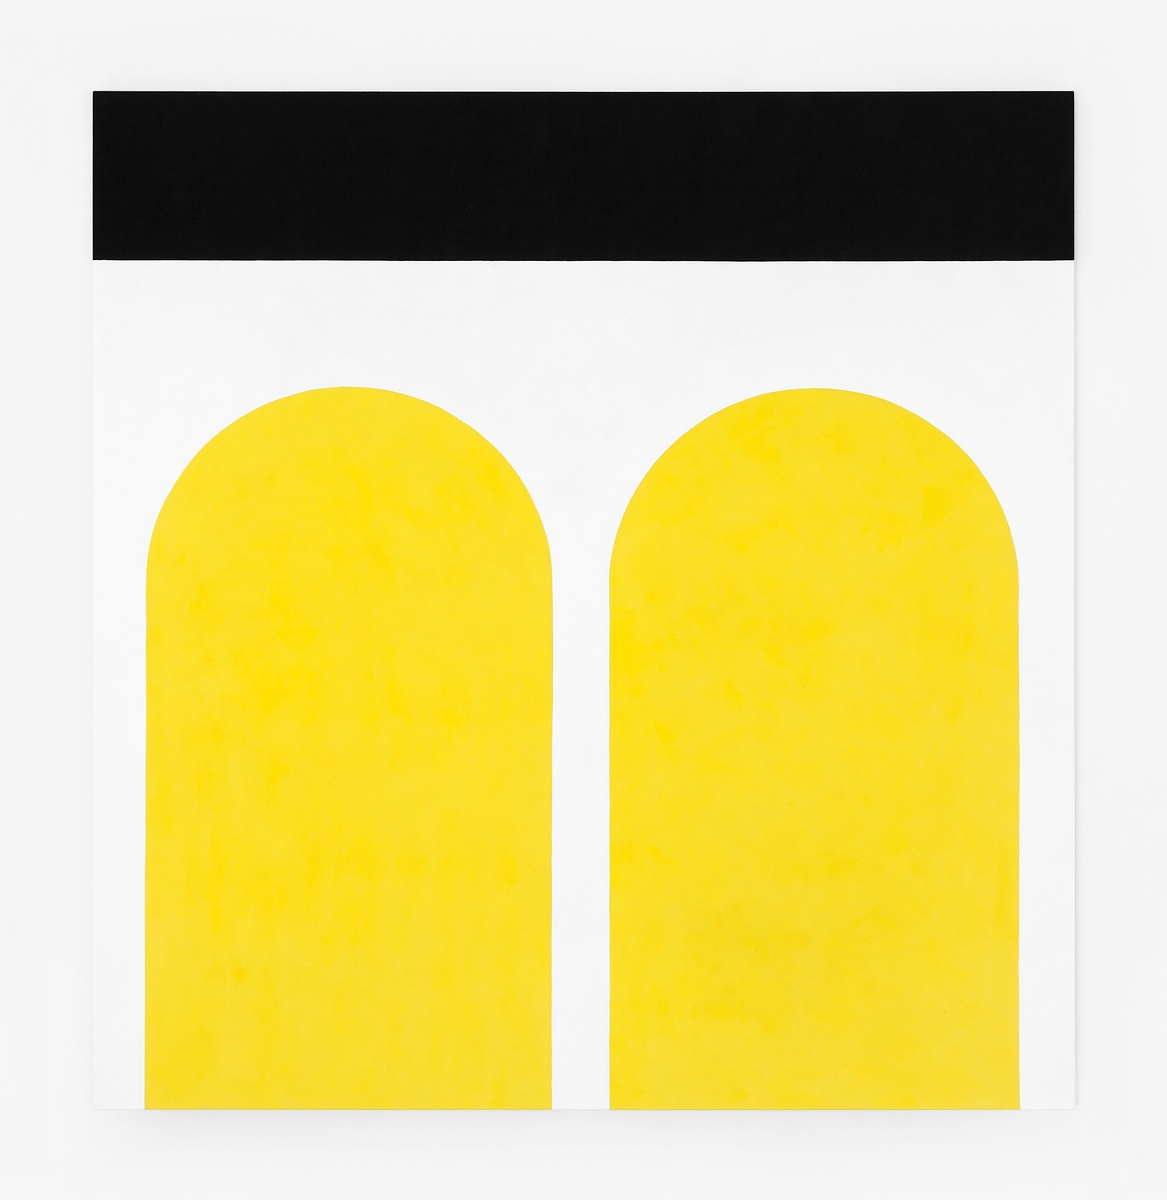 11_Bass_Arches (Yellow)_2016_48x46